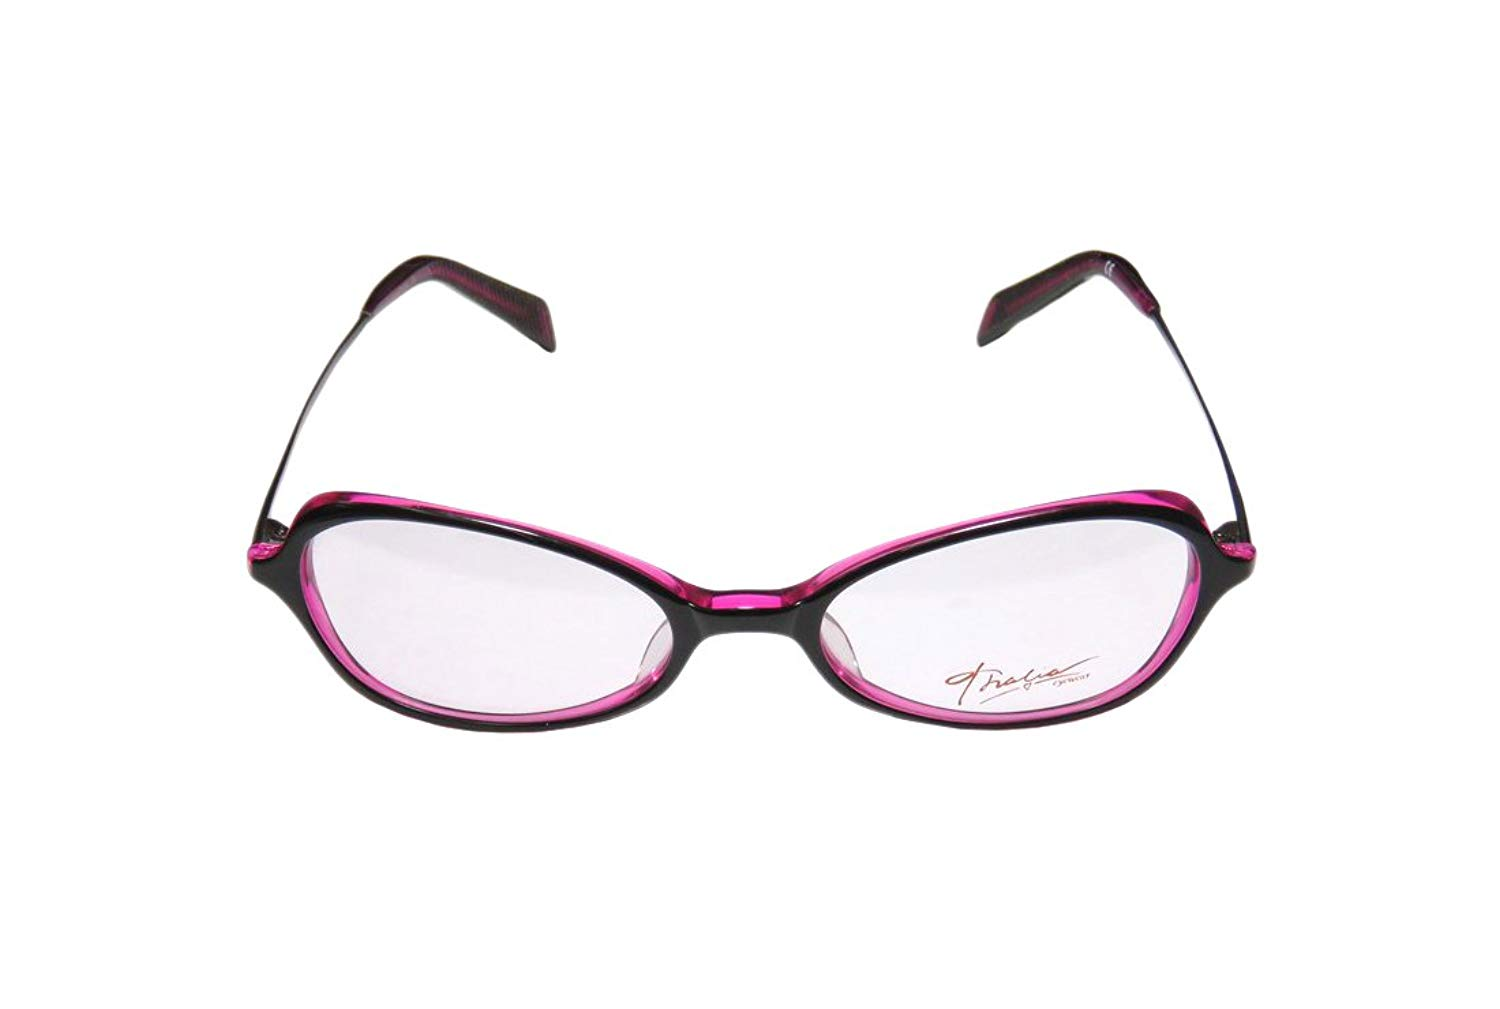 2a0a59a86173 Get Quotations · Thalia Consuelo Womens Ladies Butterfly Full-rim Eyeglasses  Glasses